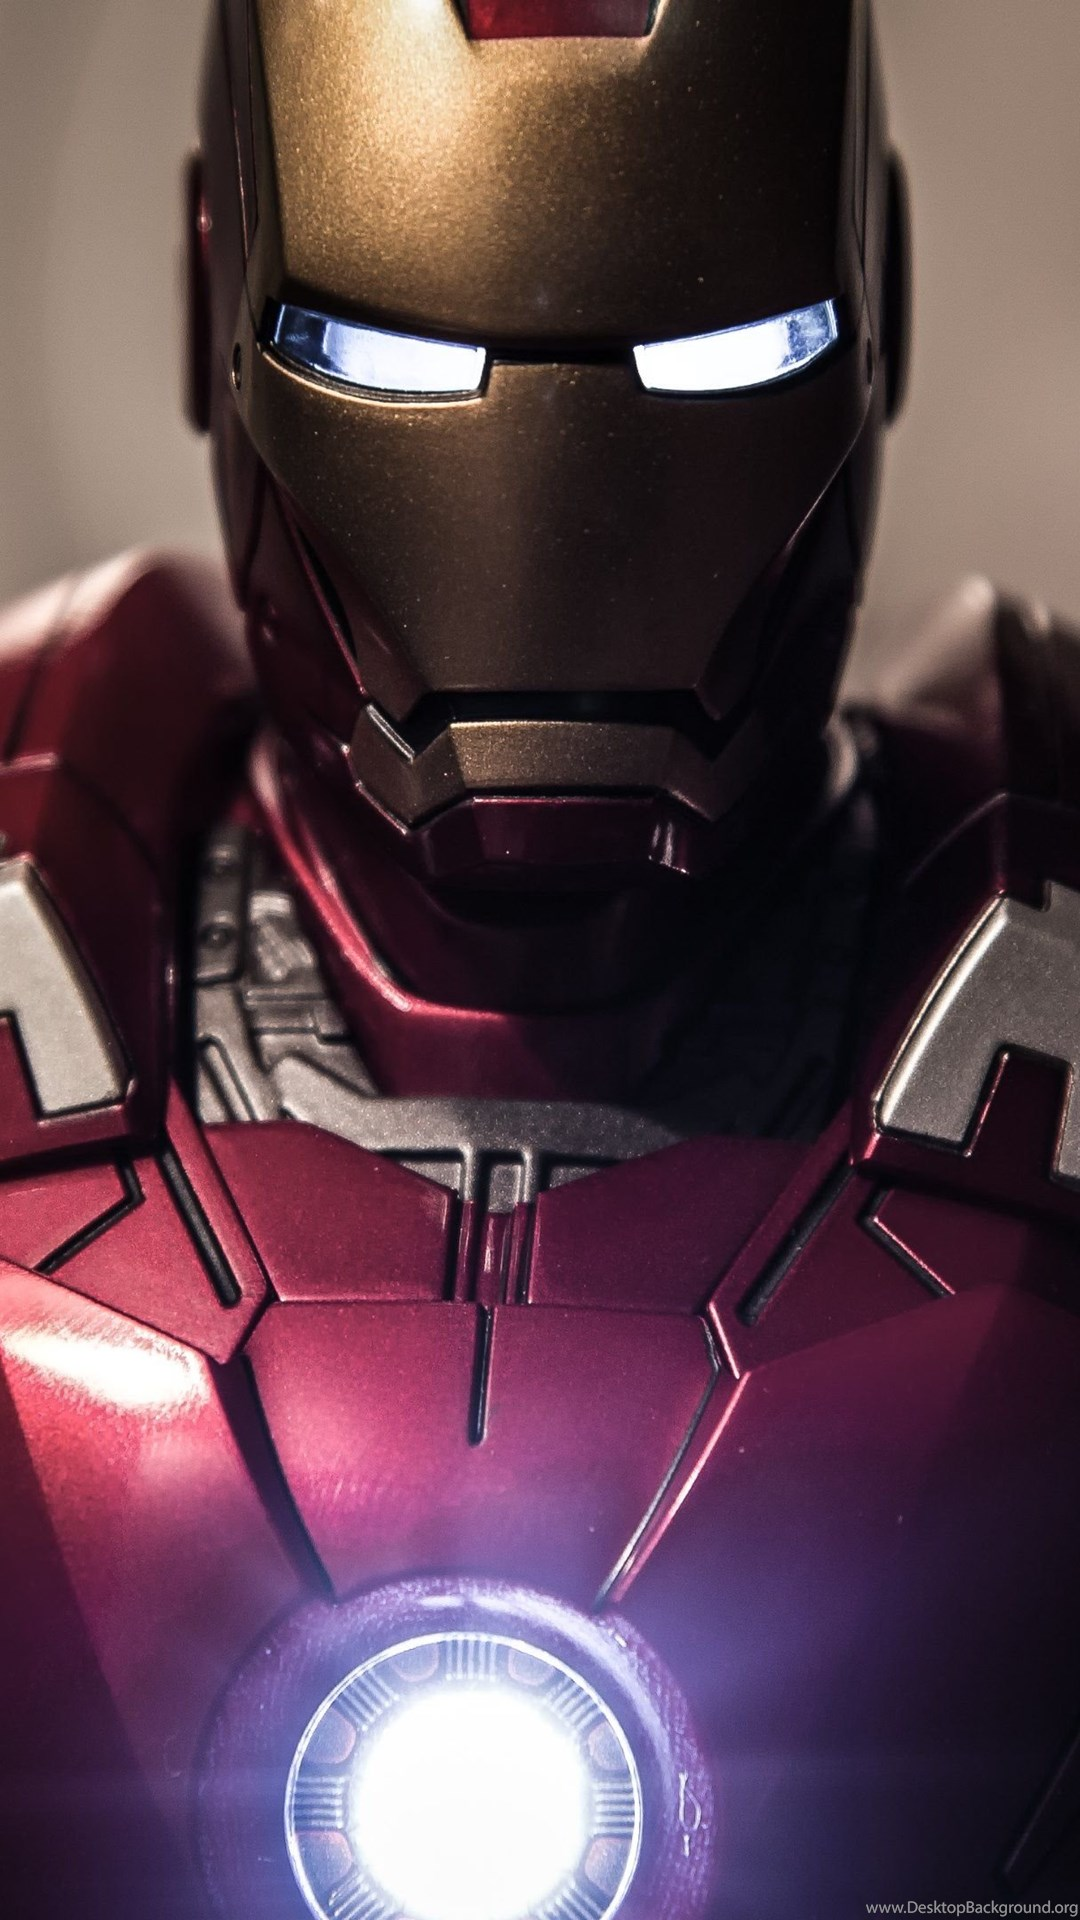 147 Iron Man Hd Wallpapers Desktop Background